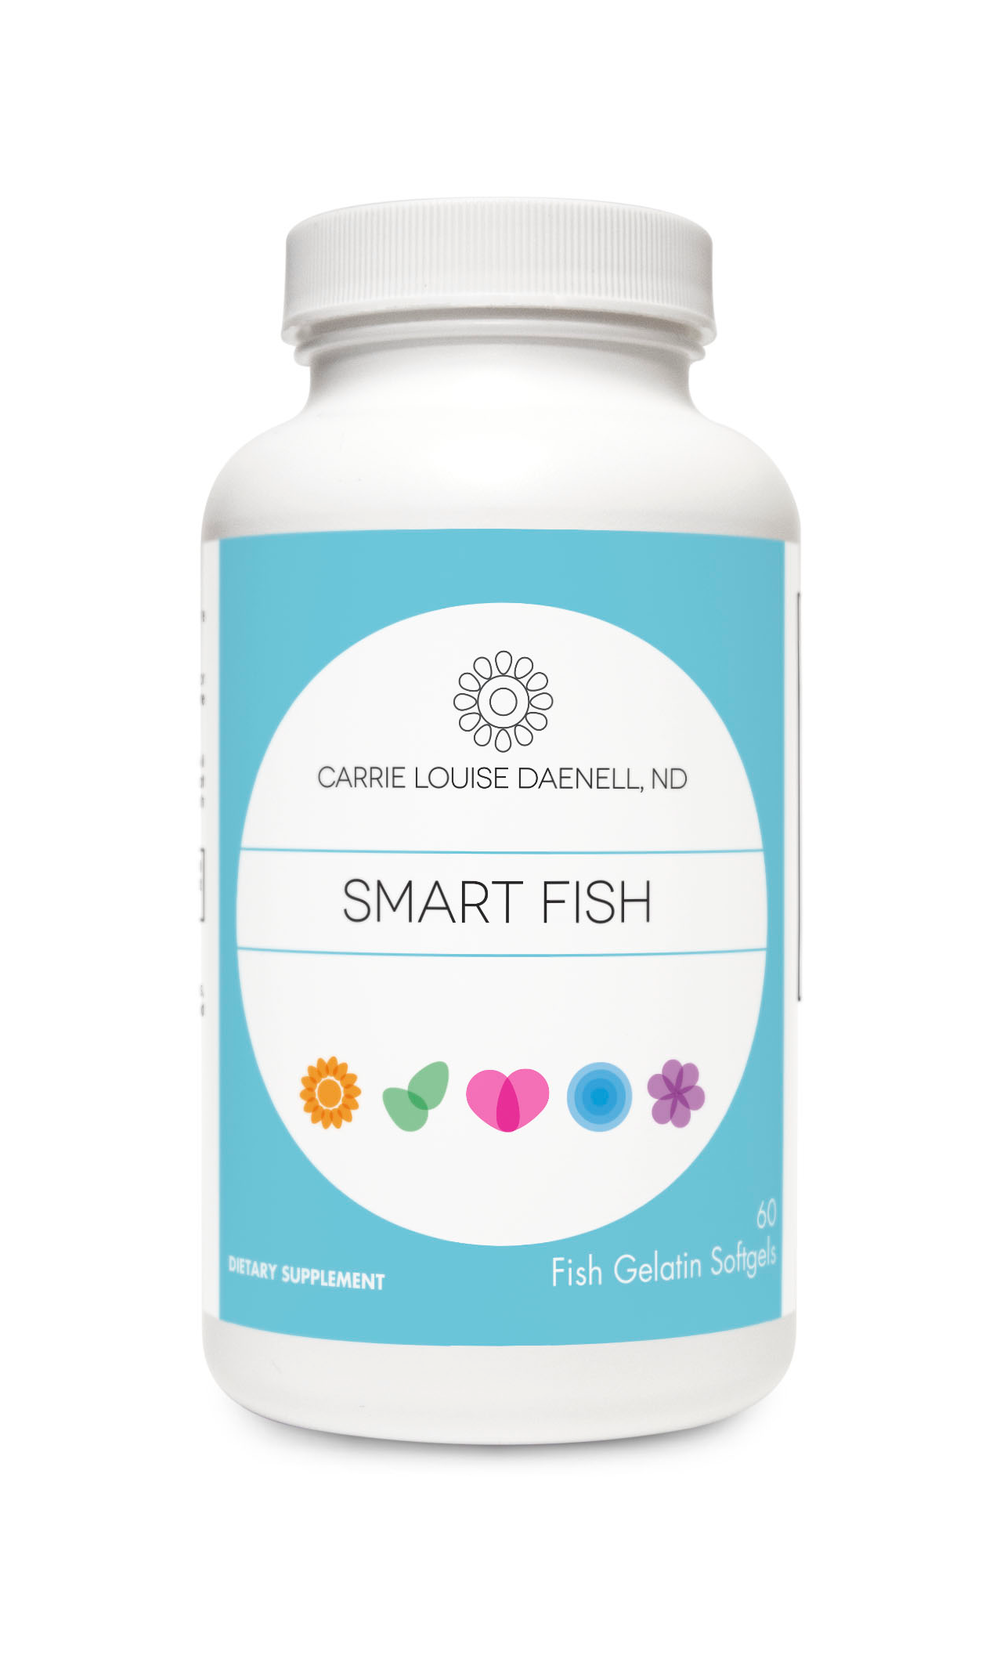 Smart fish clean and stable fish oil dr daenell online for Are fish smart